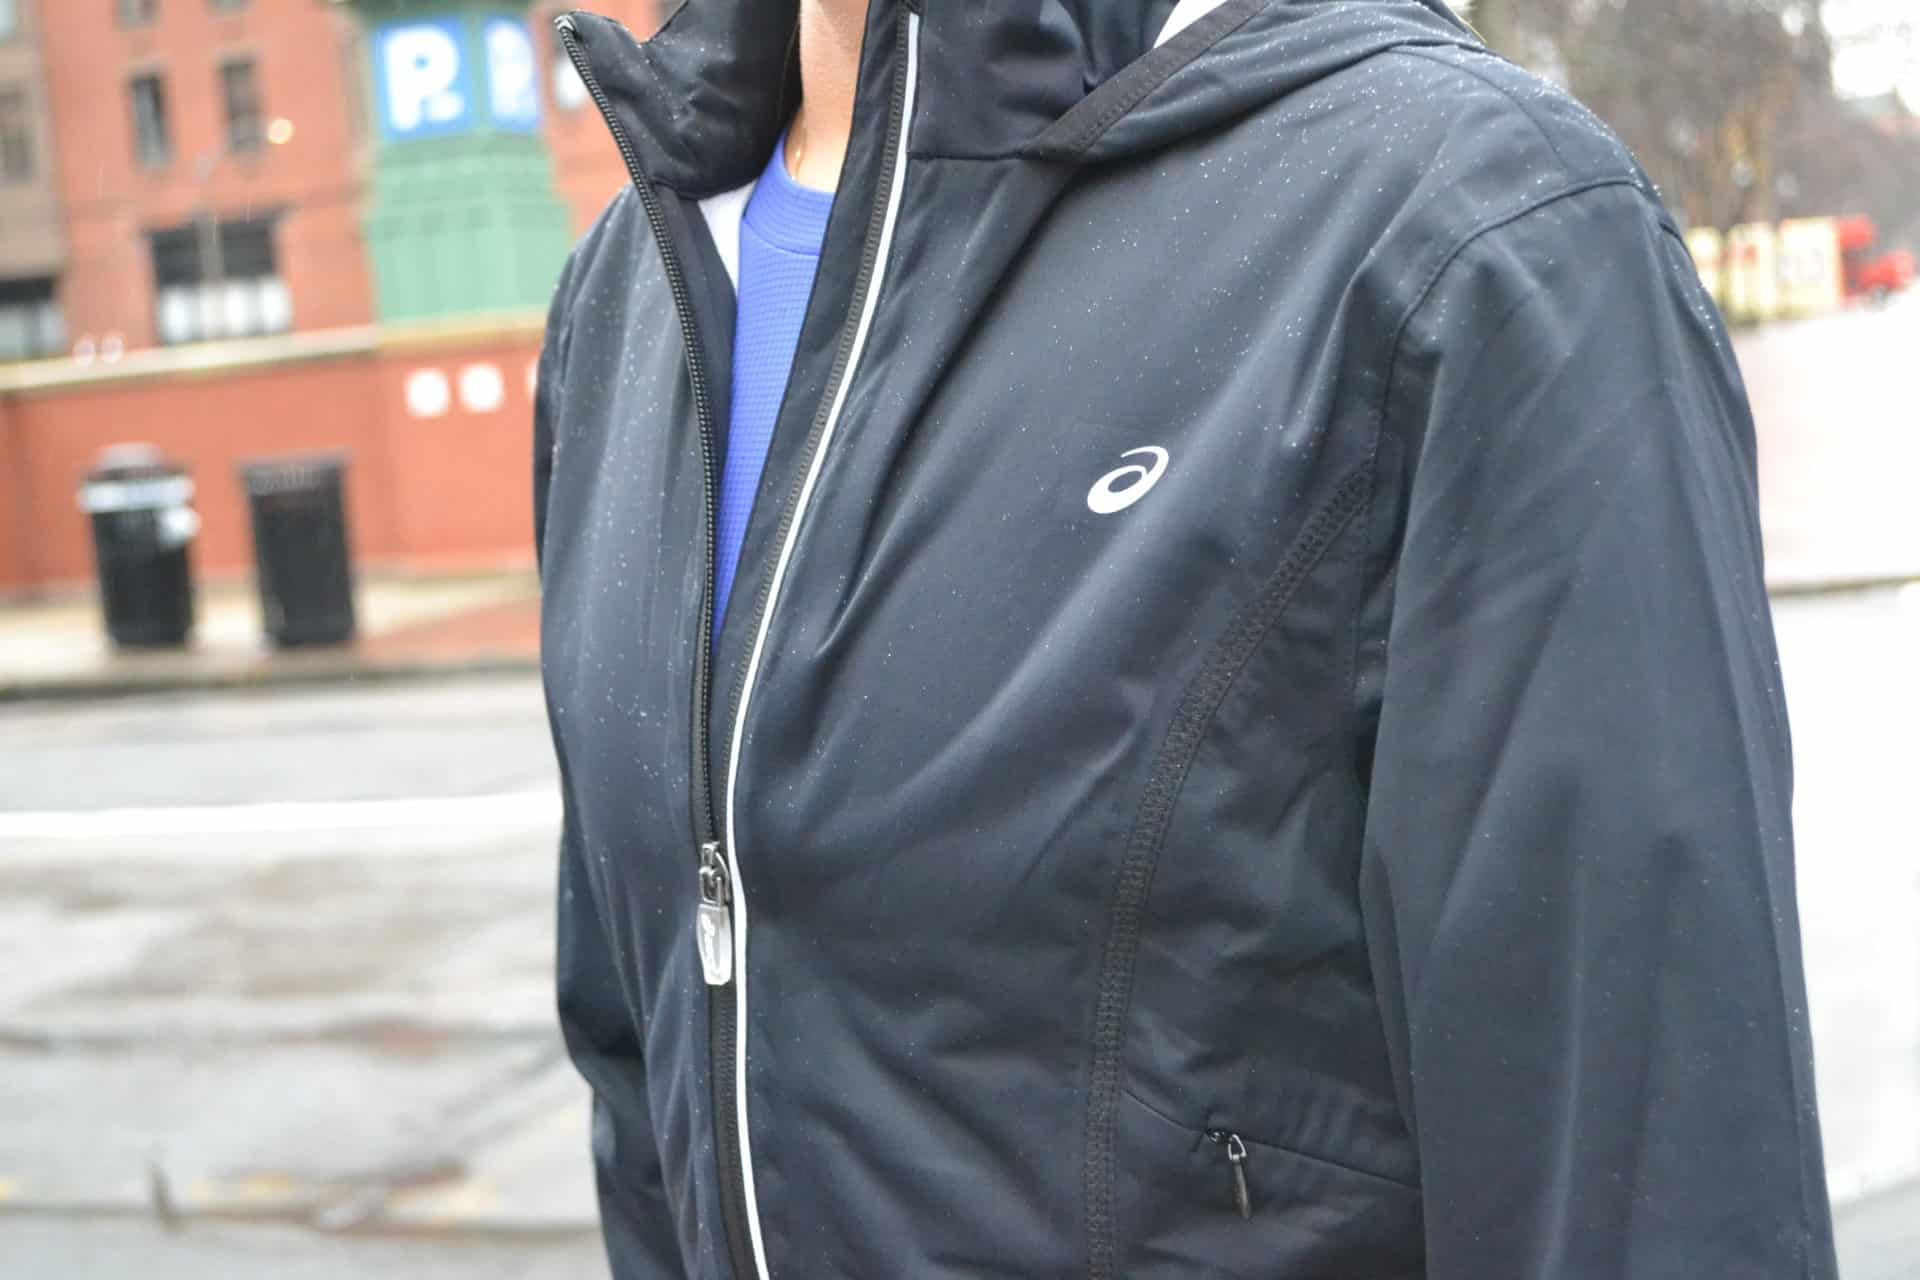 Outer shells like this ASICS jacket keep the elements off our apparel